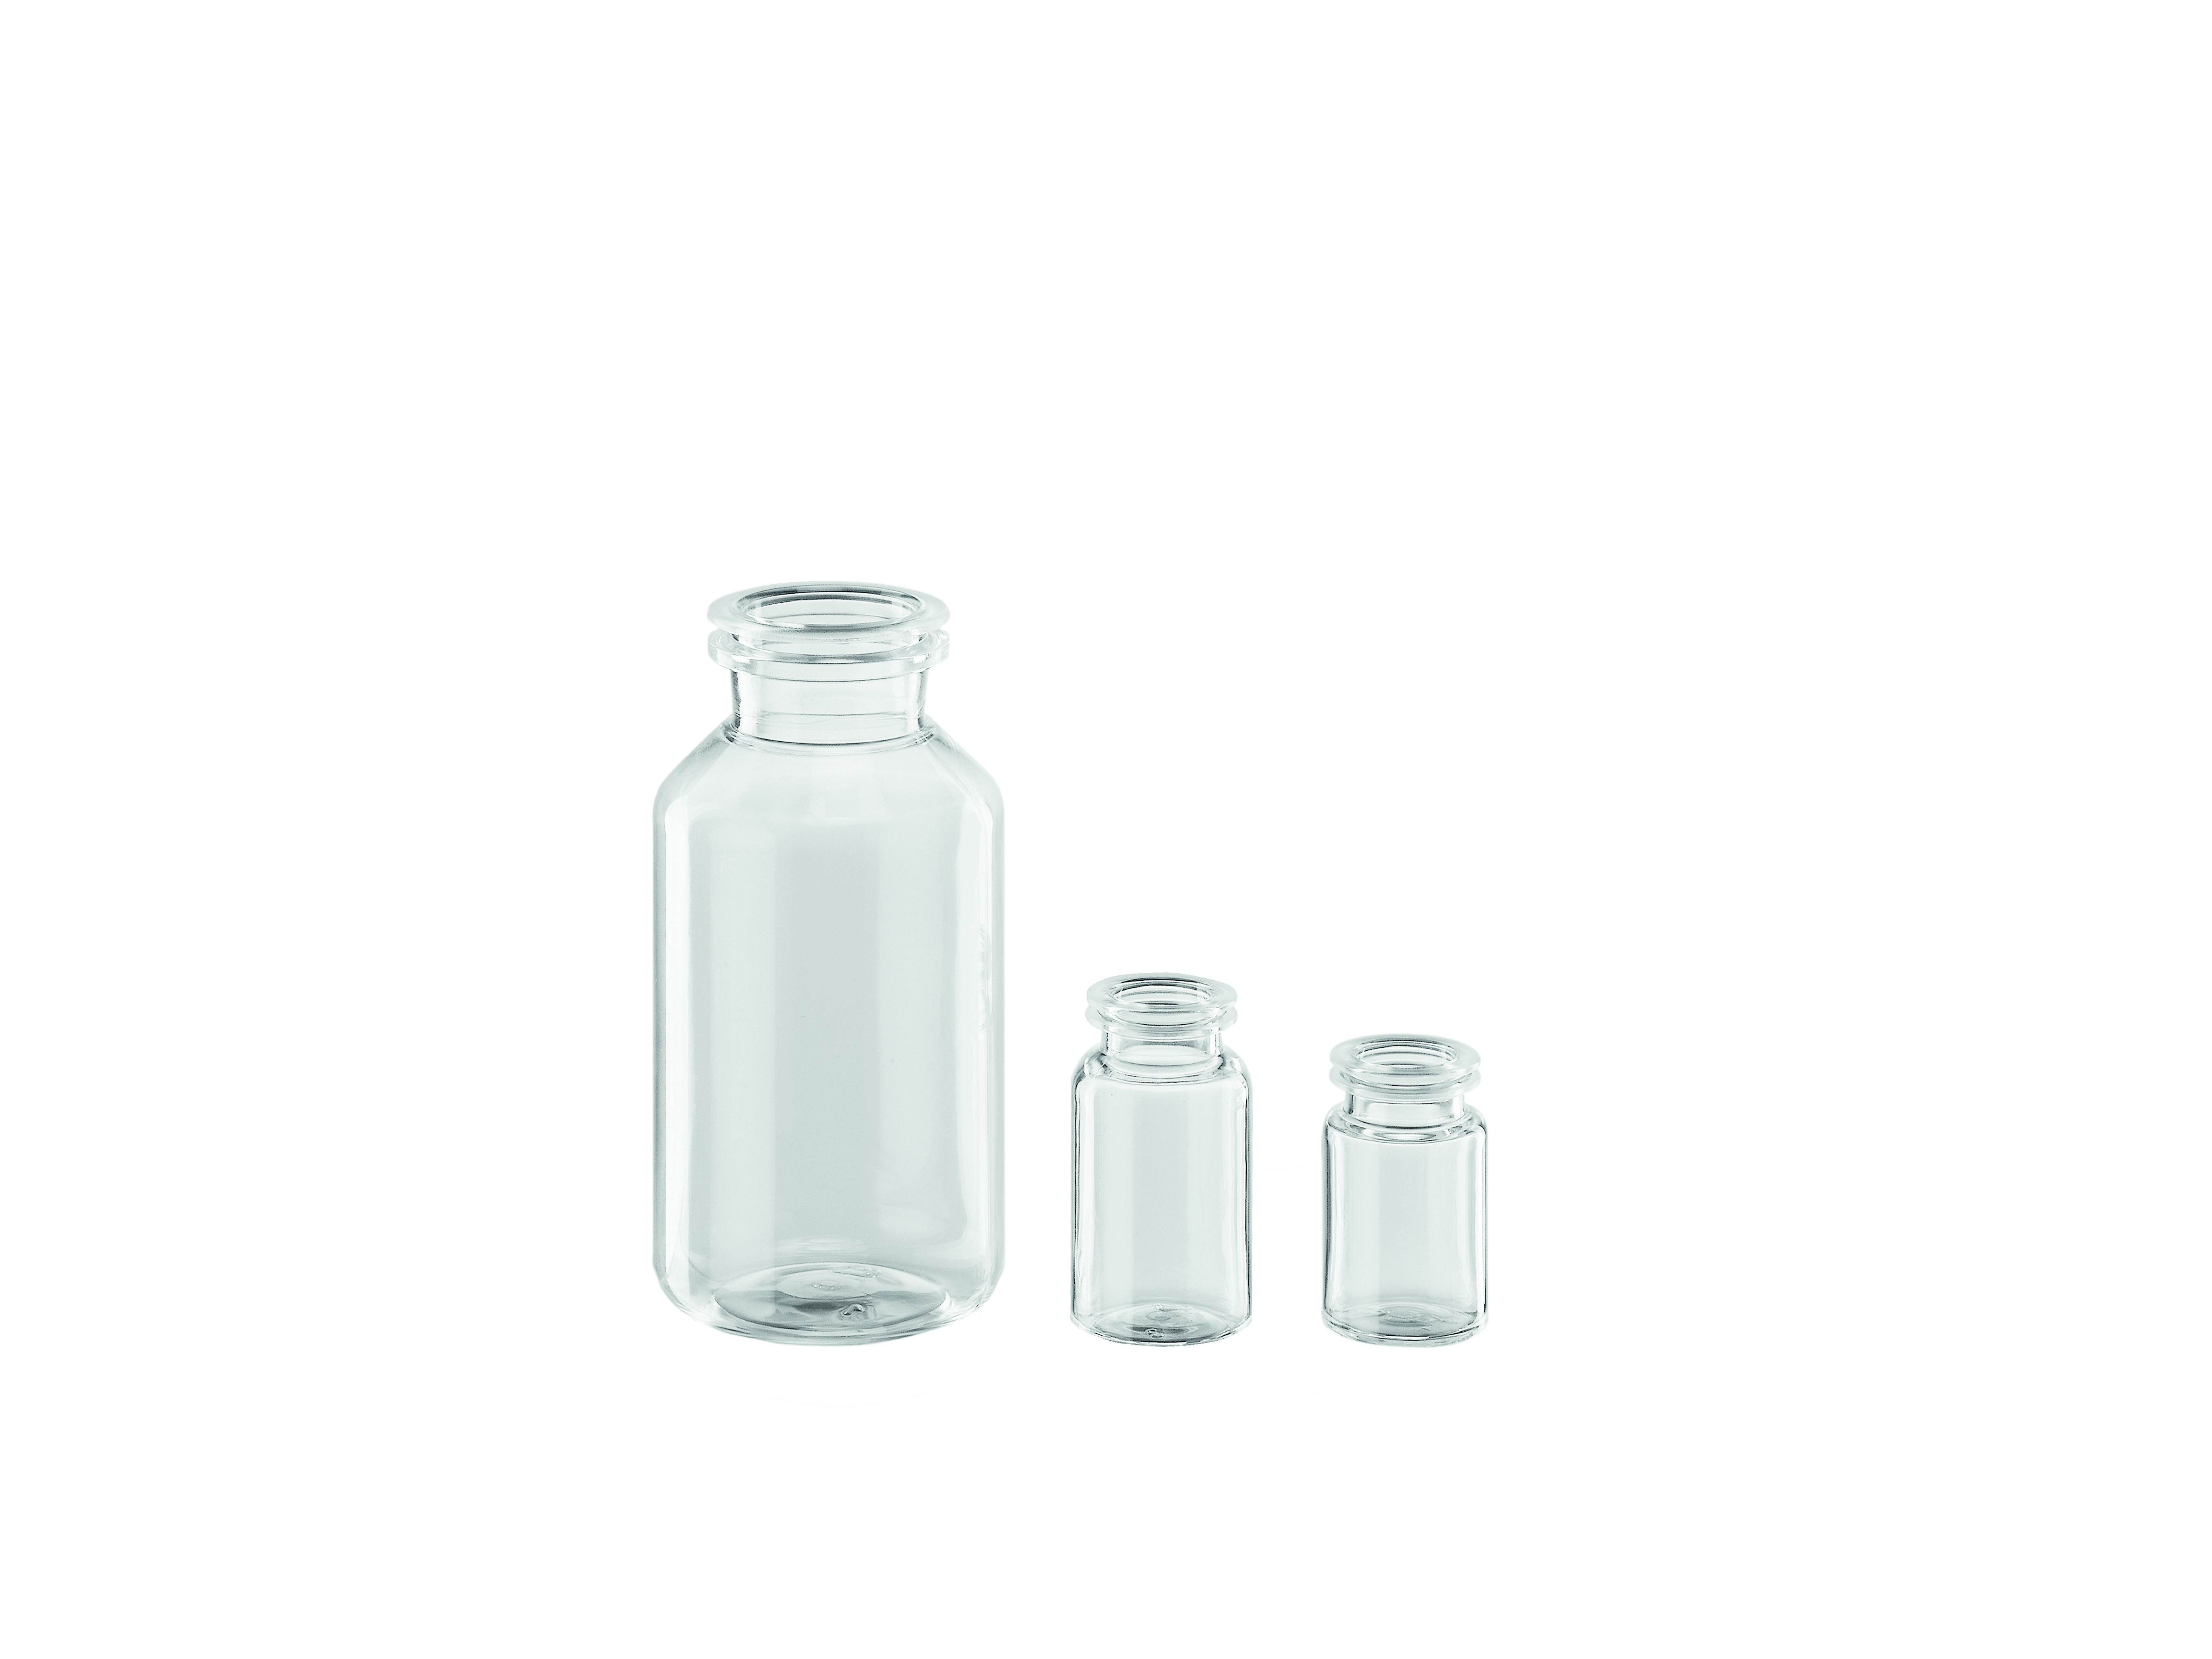 COP injection bottles with crimp neck finish